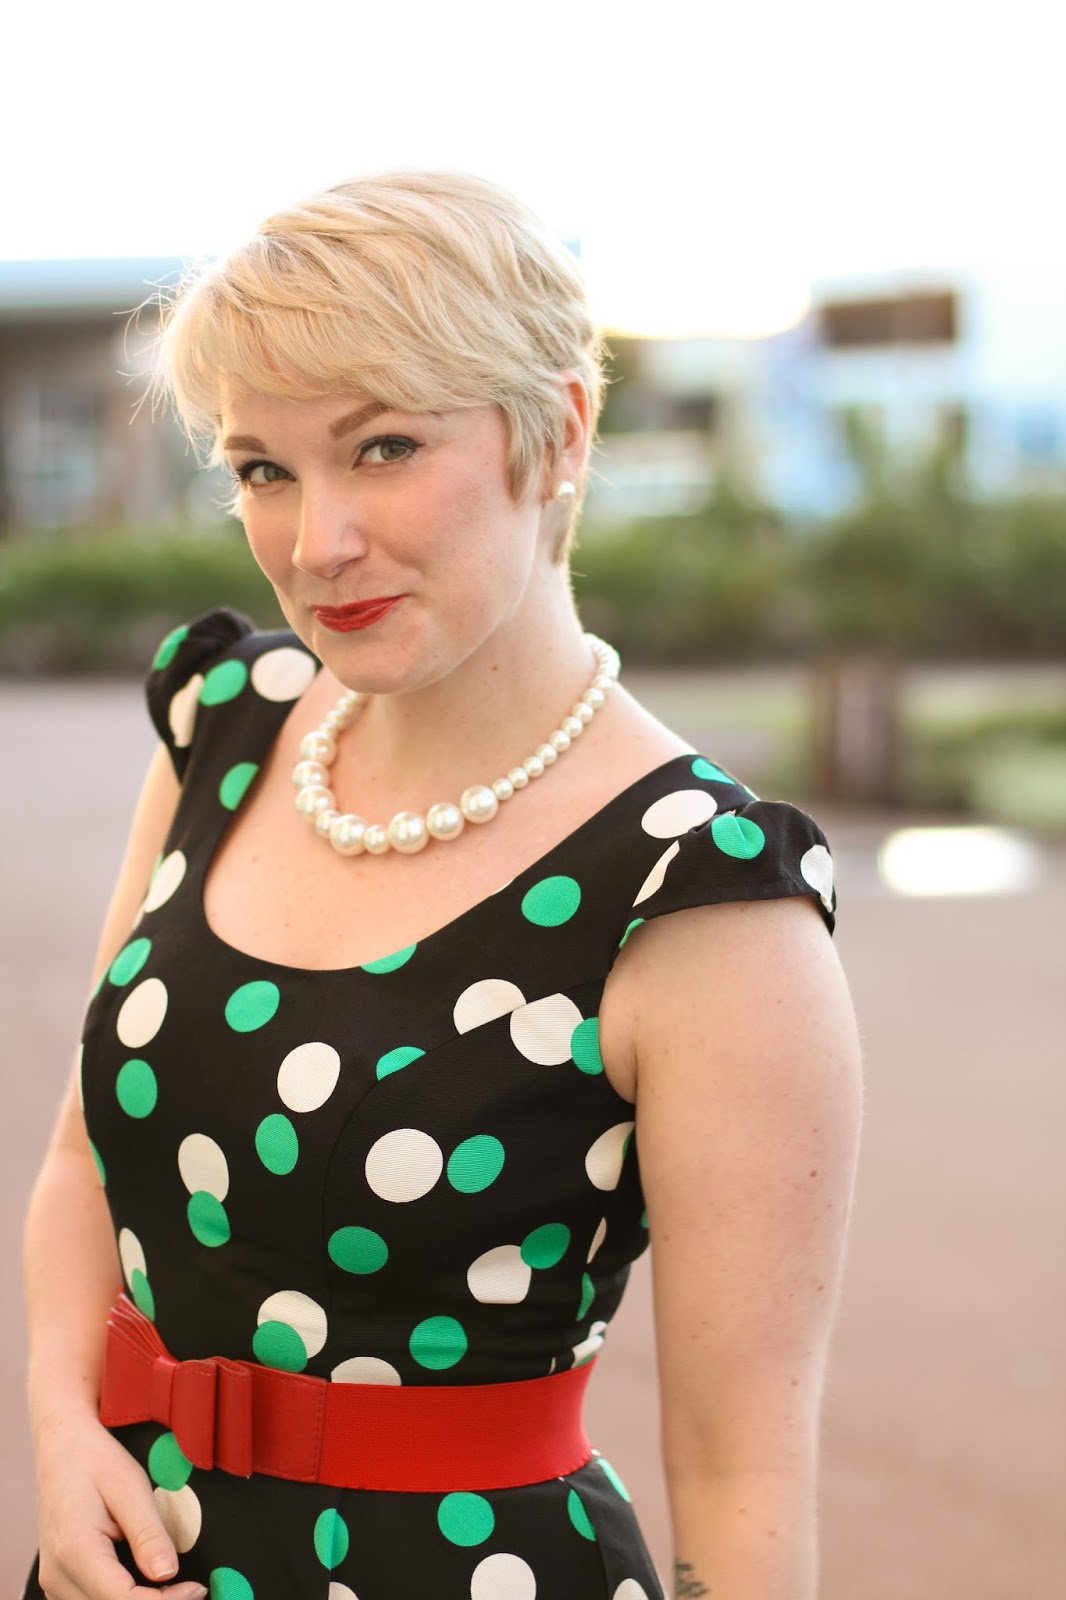 Liana of Finding Femme wears Review Australia polka dot dress with red Glassons belt and red patent pumps at Perth Oval.